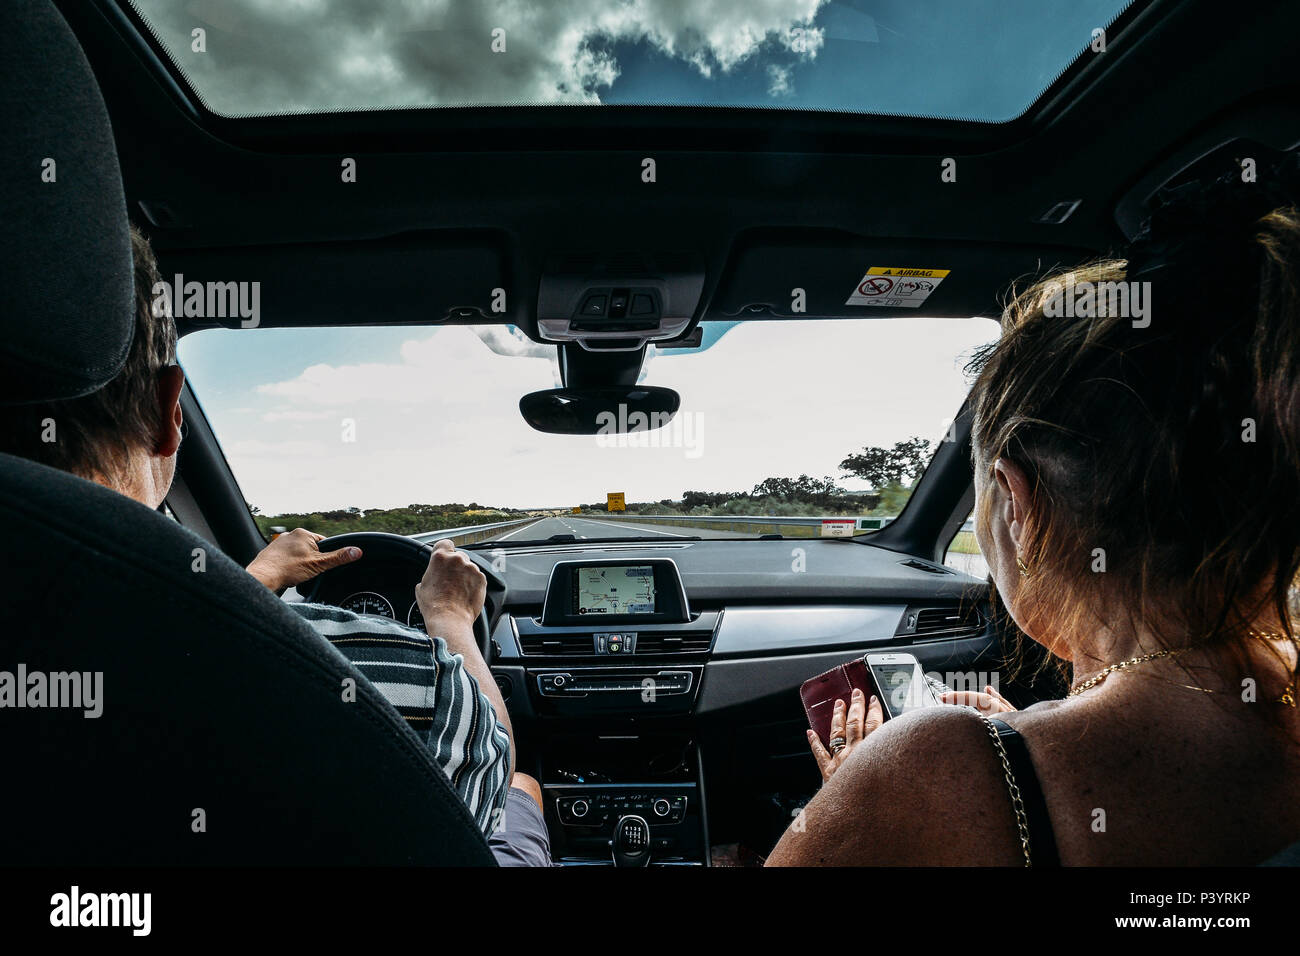 Older couple on front seat of car. Road trip concept. Woman uses a smartphone to pass the time while man drives - Stock Image